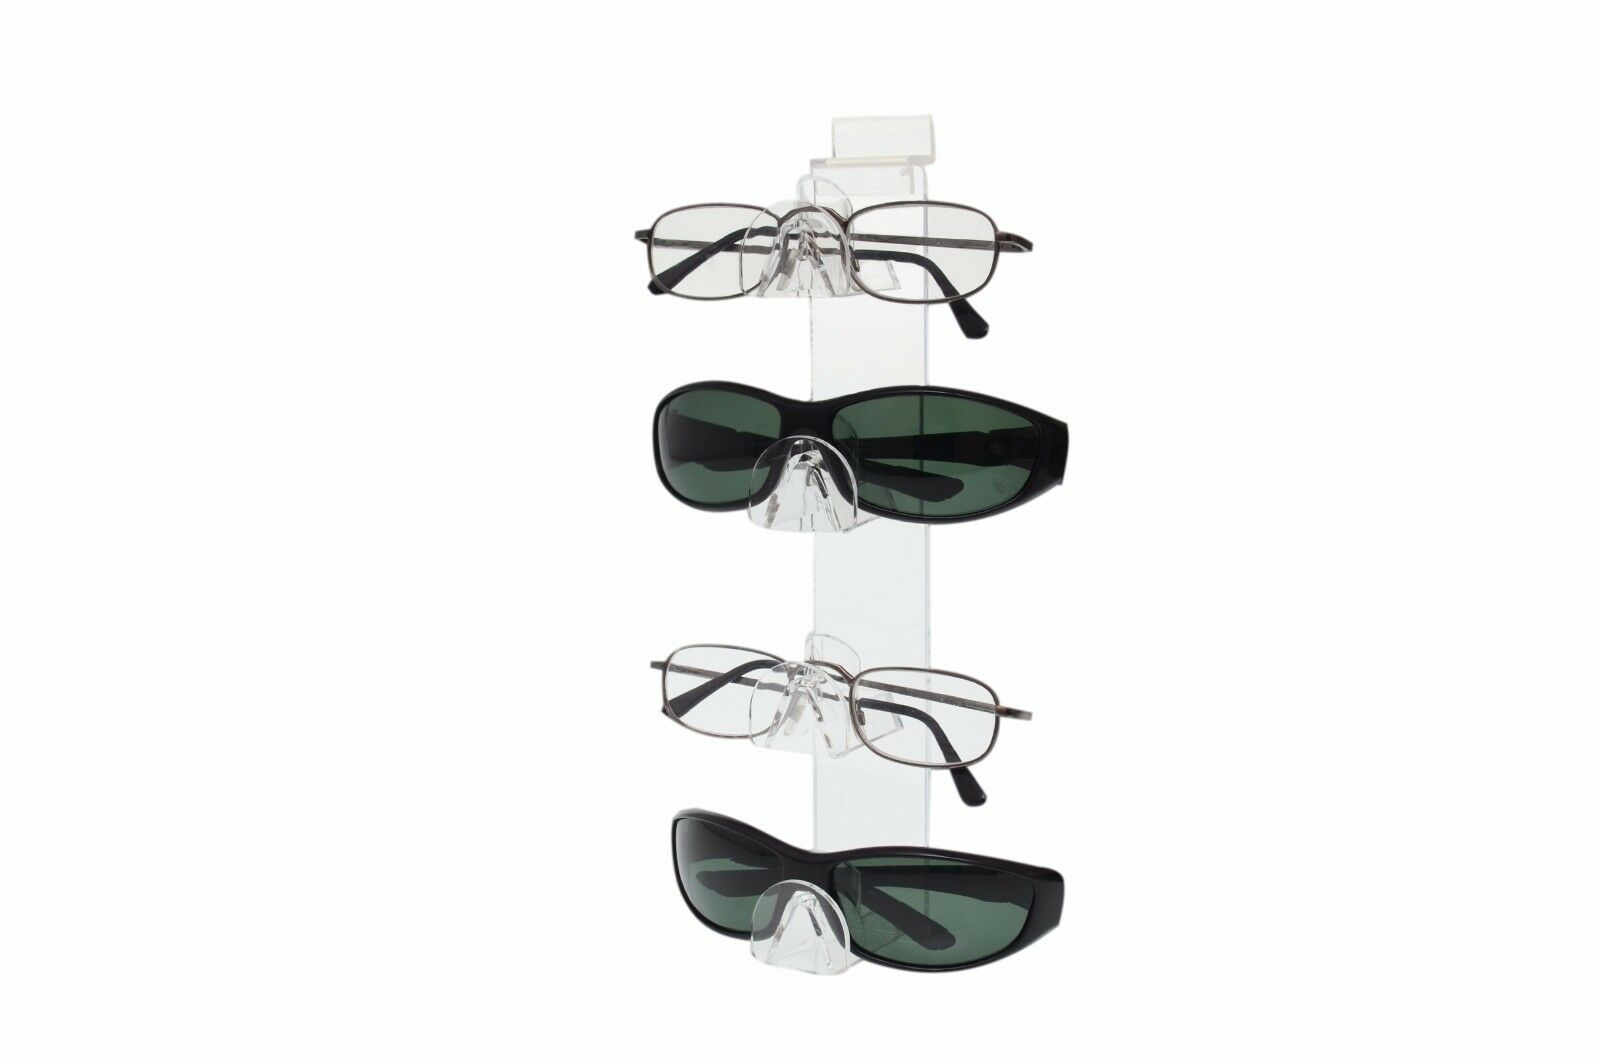 Marketing Holders Single Tier Sunglasses Stand Spectacles Safety Glass Value Pack of 12 Warehouse Slant Back Eyeglasses Labs Acrylic Clear Display